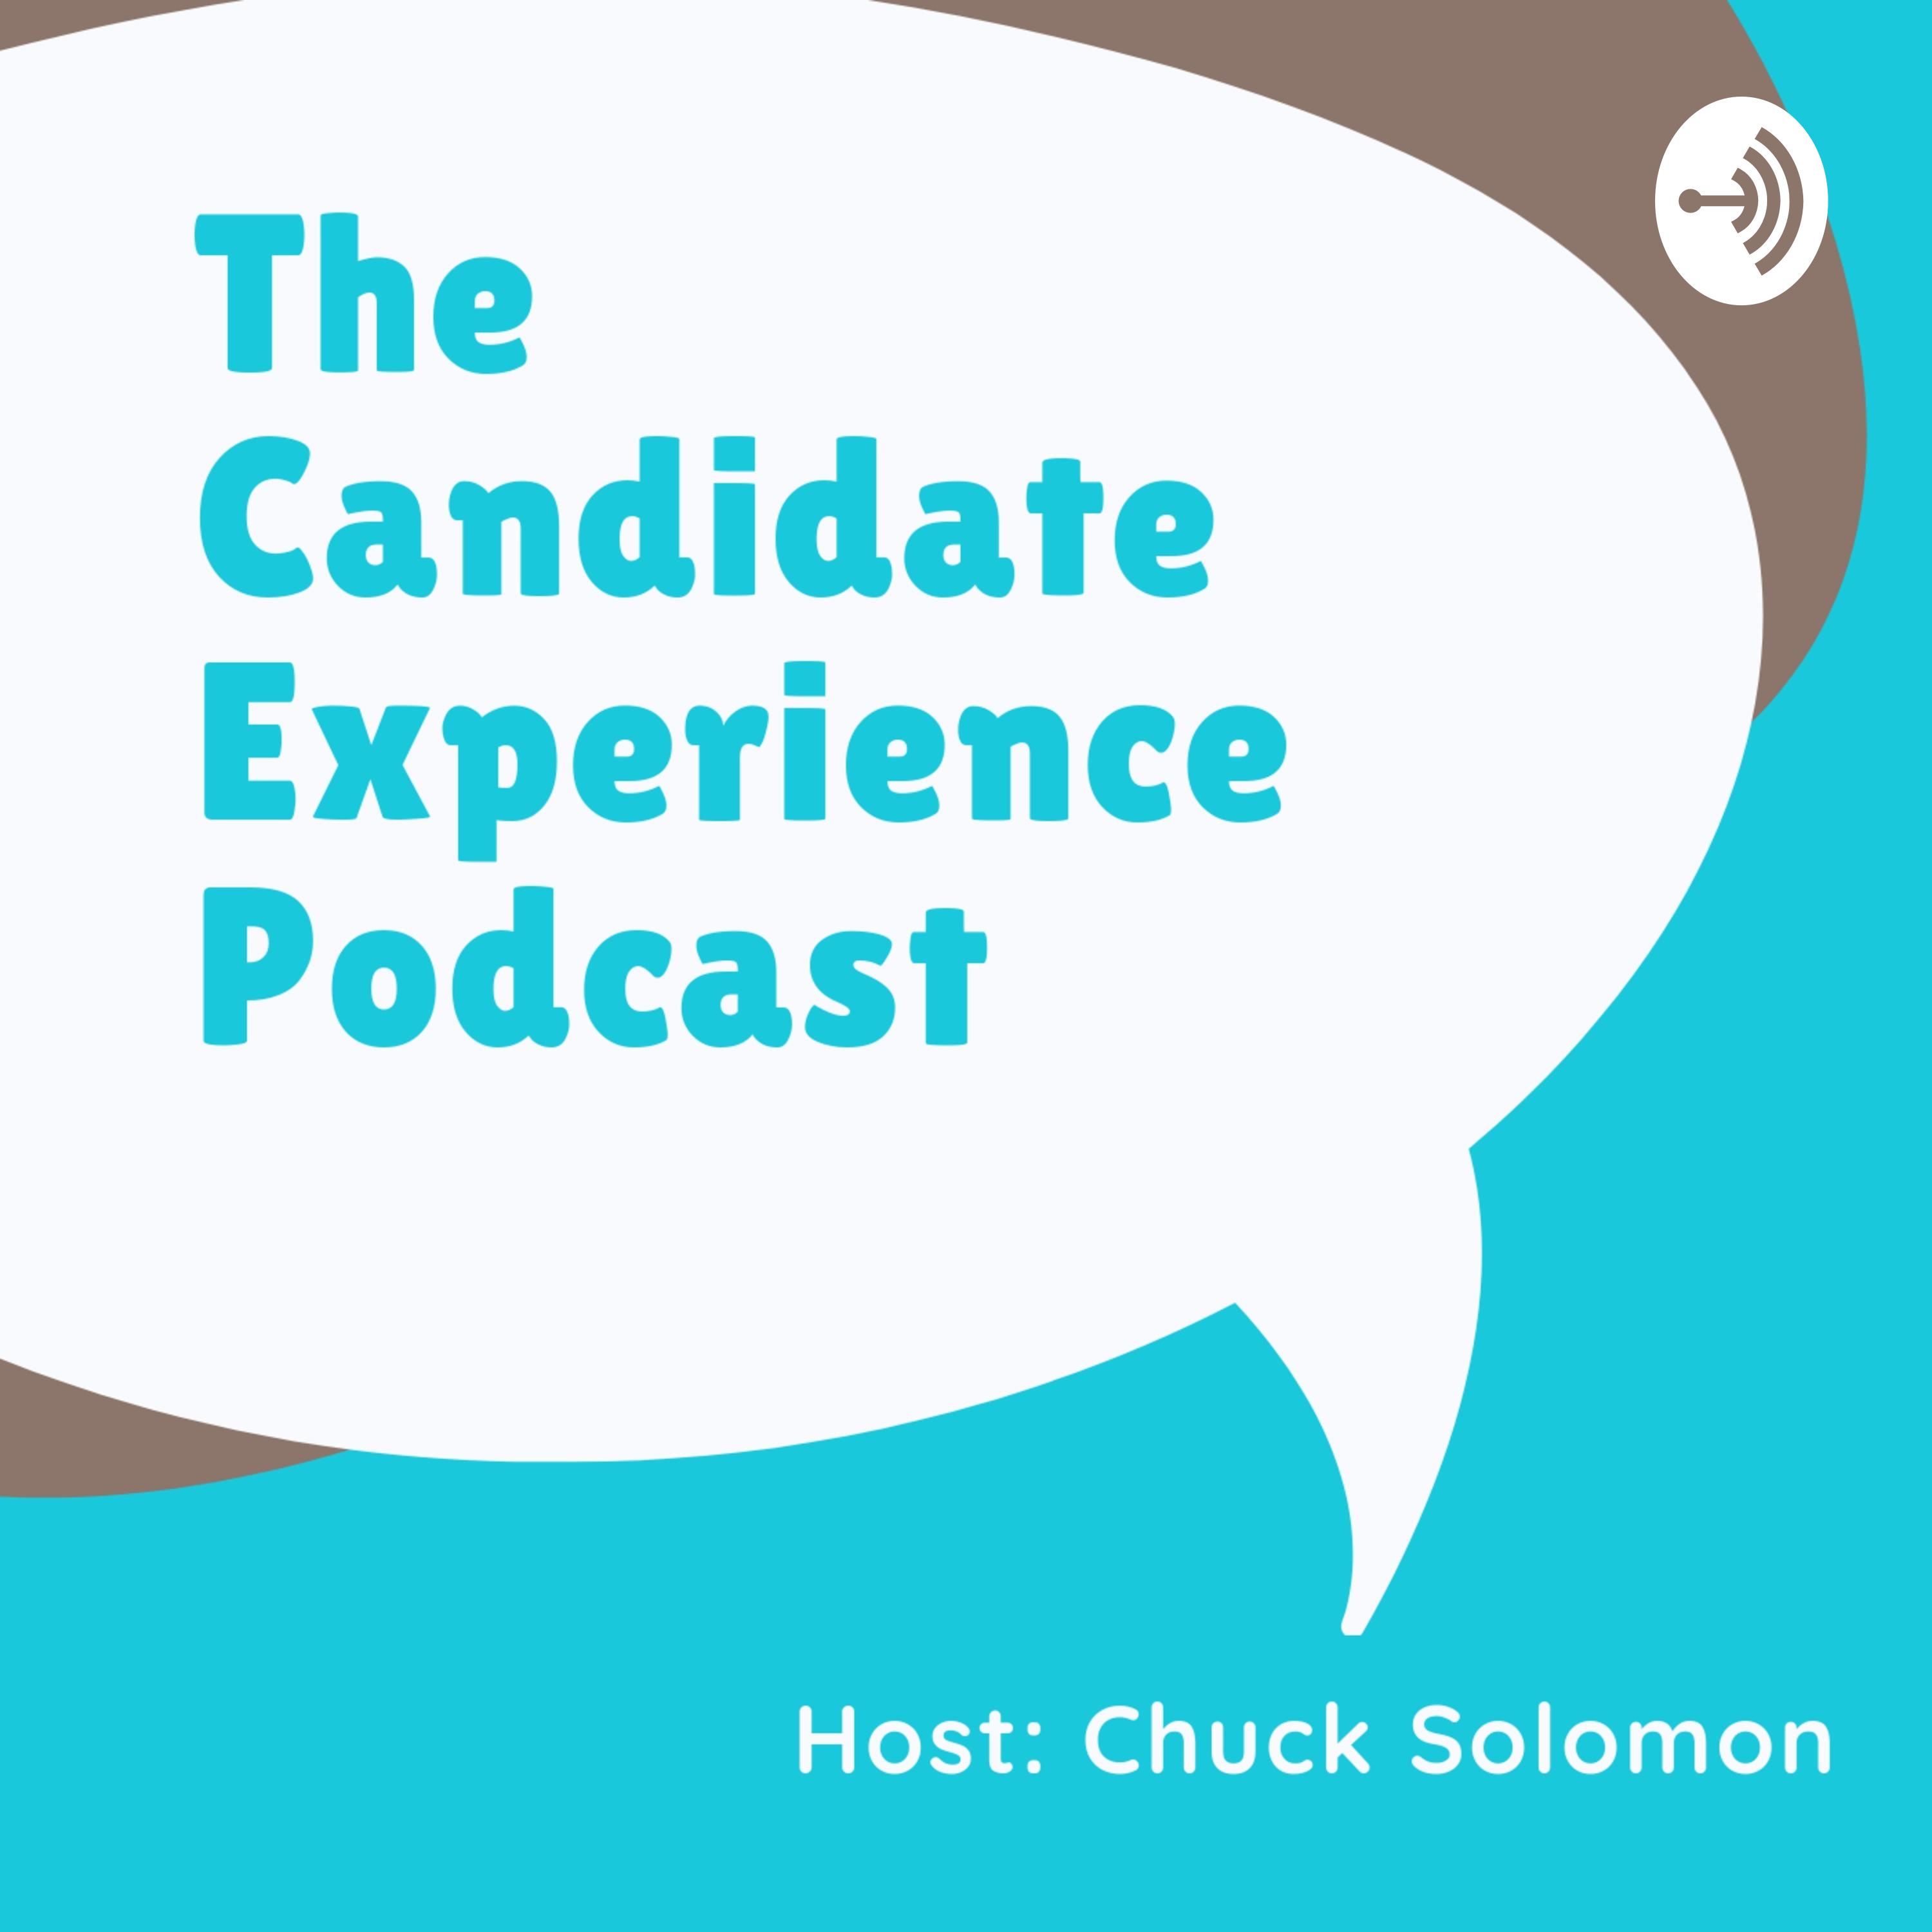 The Candidate Experience Podcast